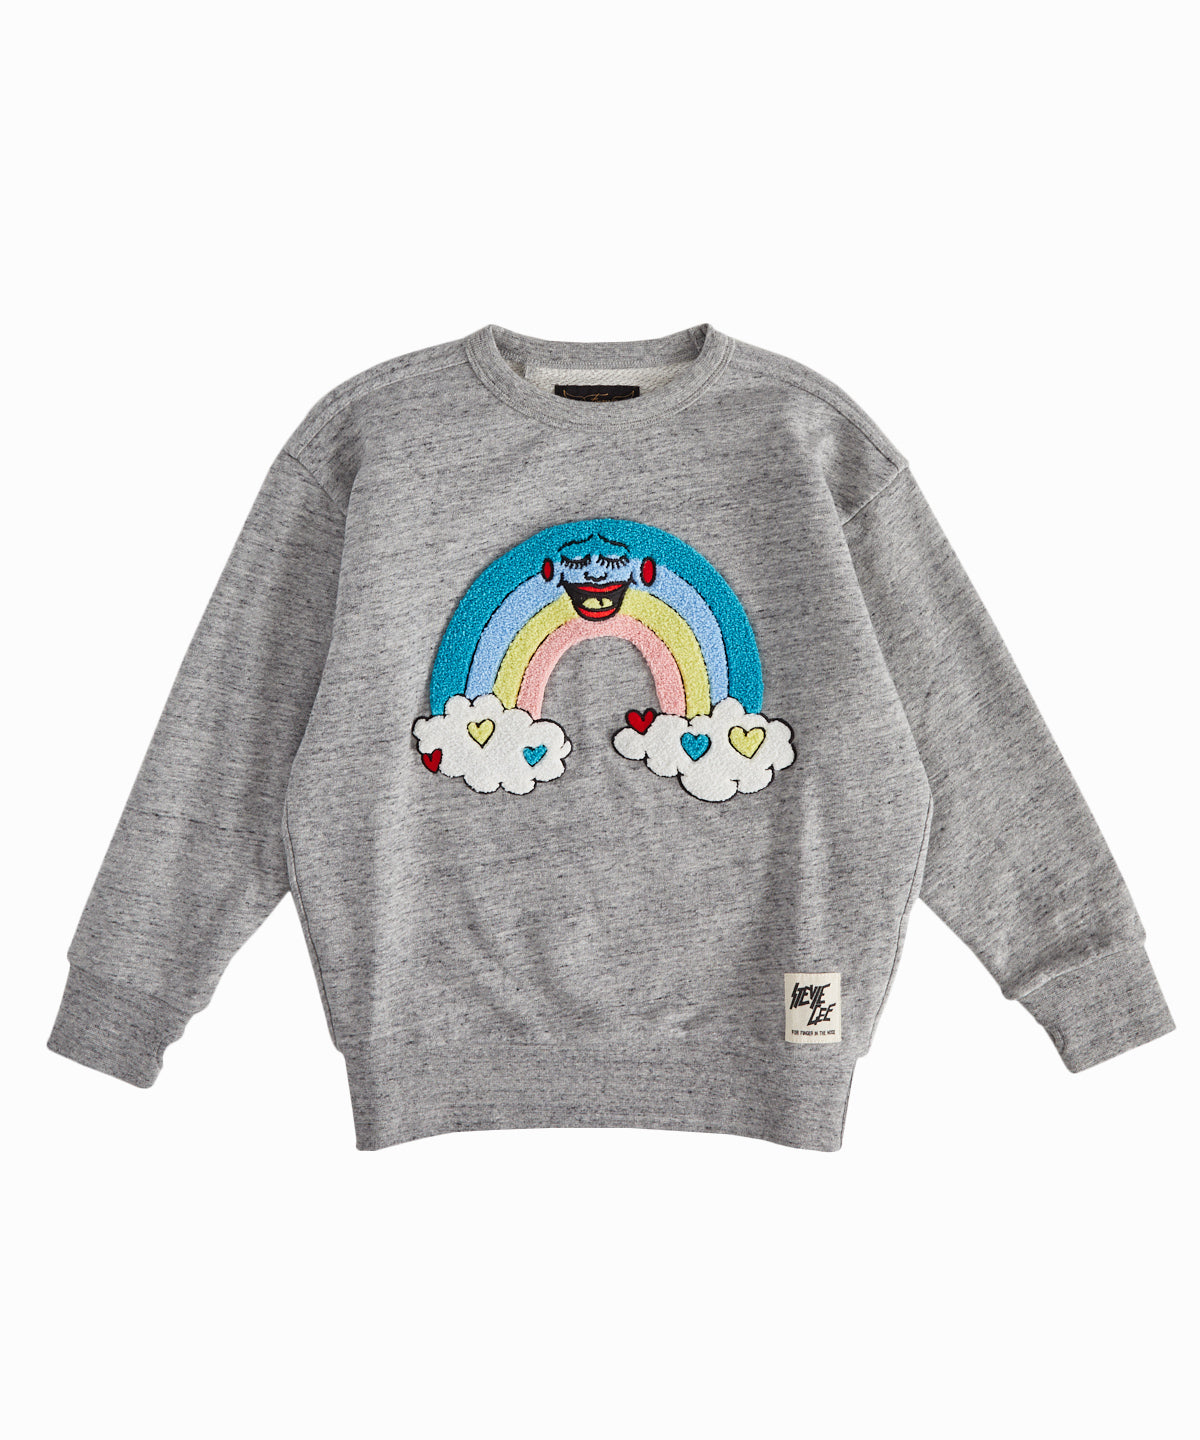 Rainbow Applique Sweatshirt